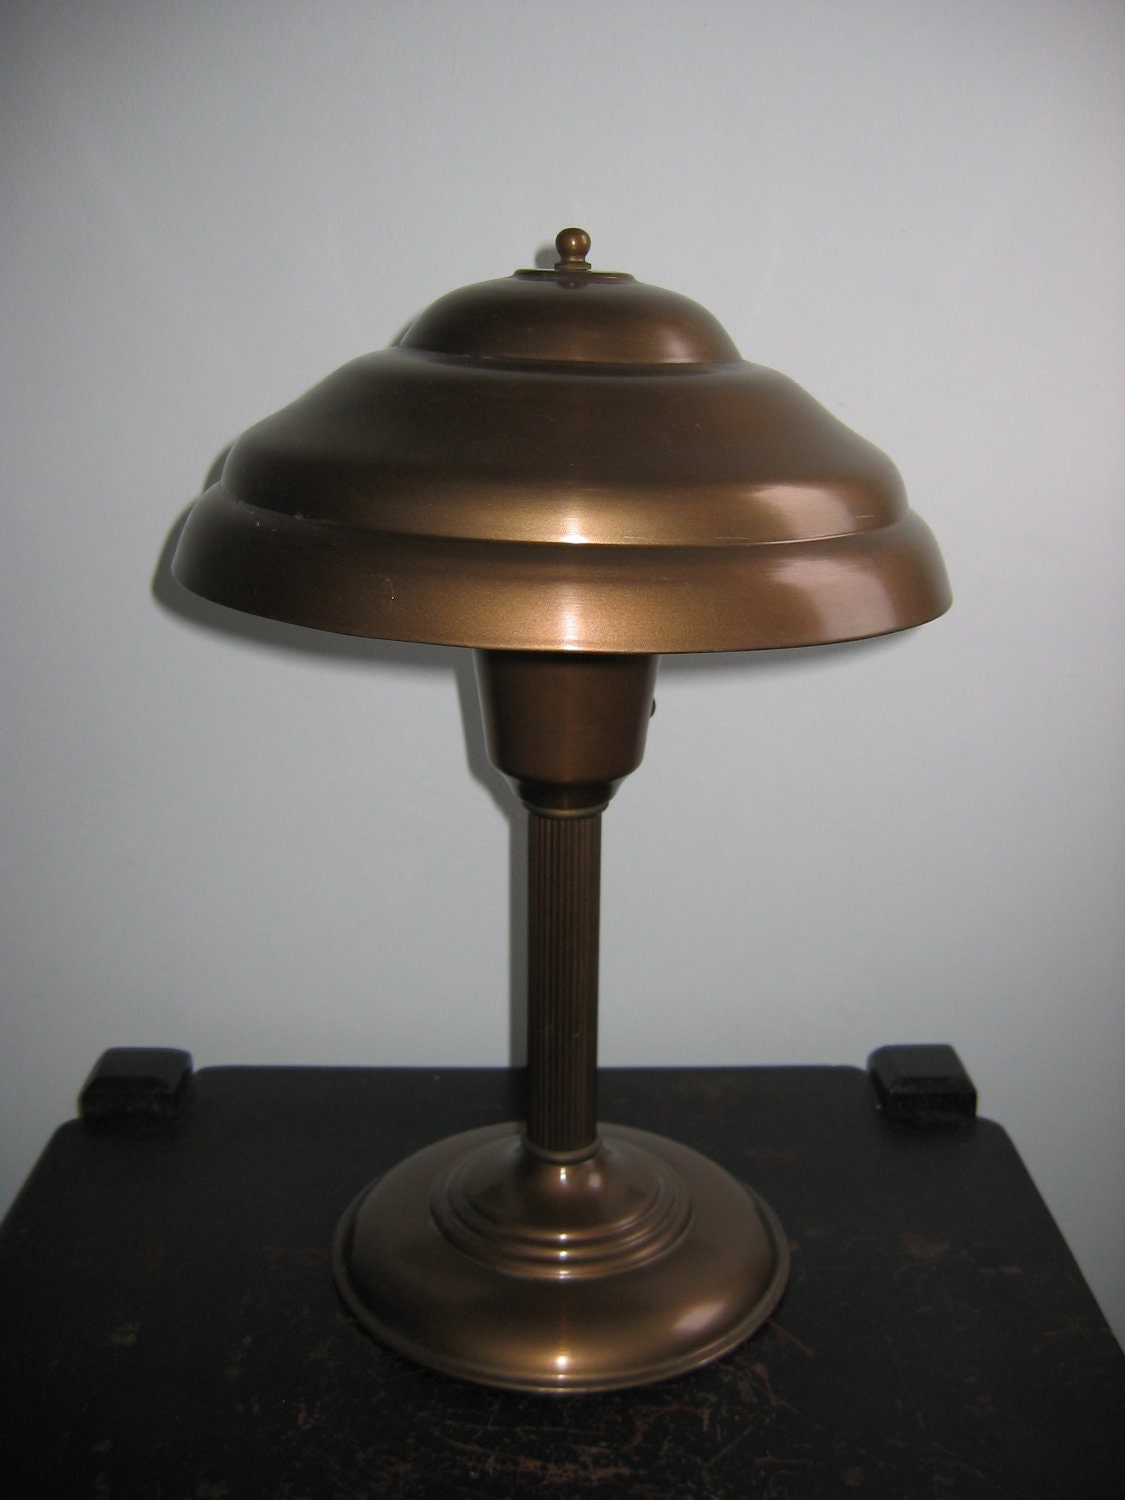 50 S Vintage Mushroom Table Lamp Copper Colored Metal